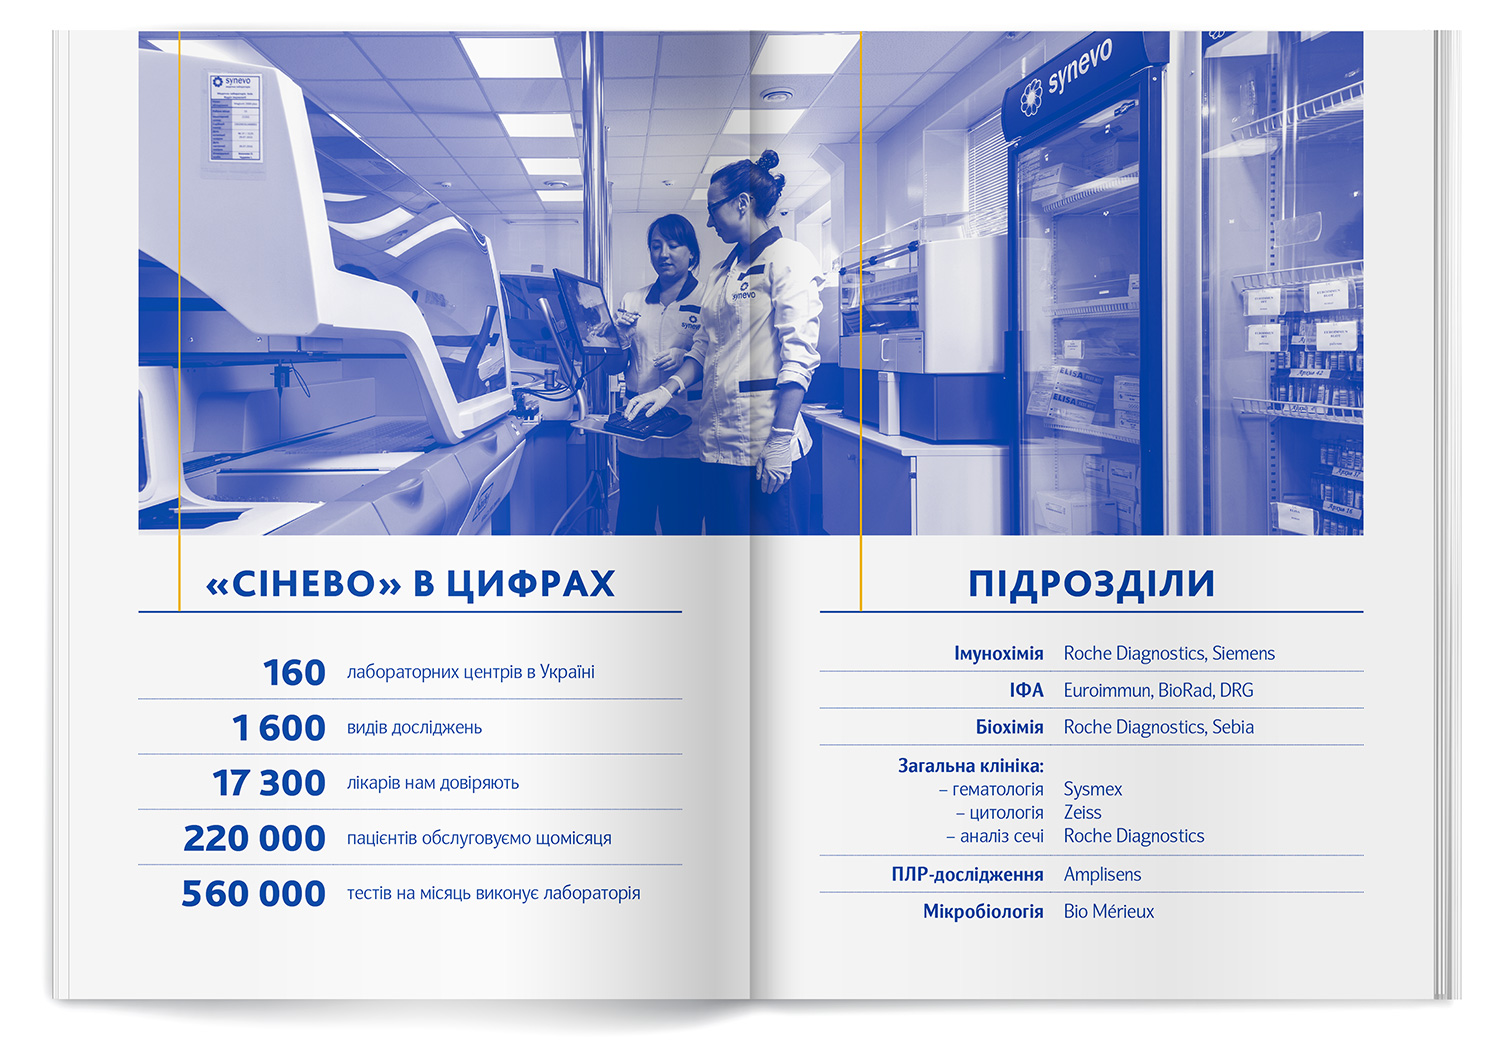 SYNEVO laboratory in numbers. Departments (sections) of the medical laboratory. The information spread inside the price list.